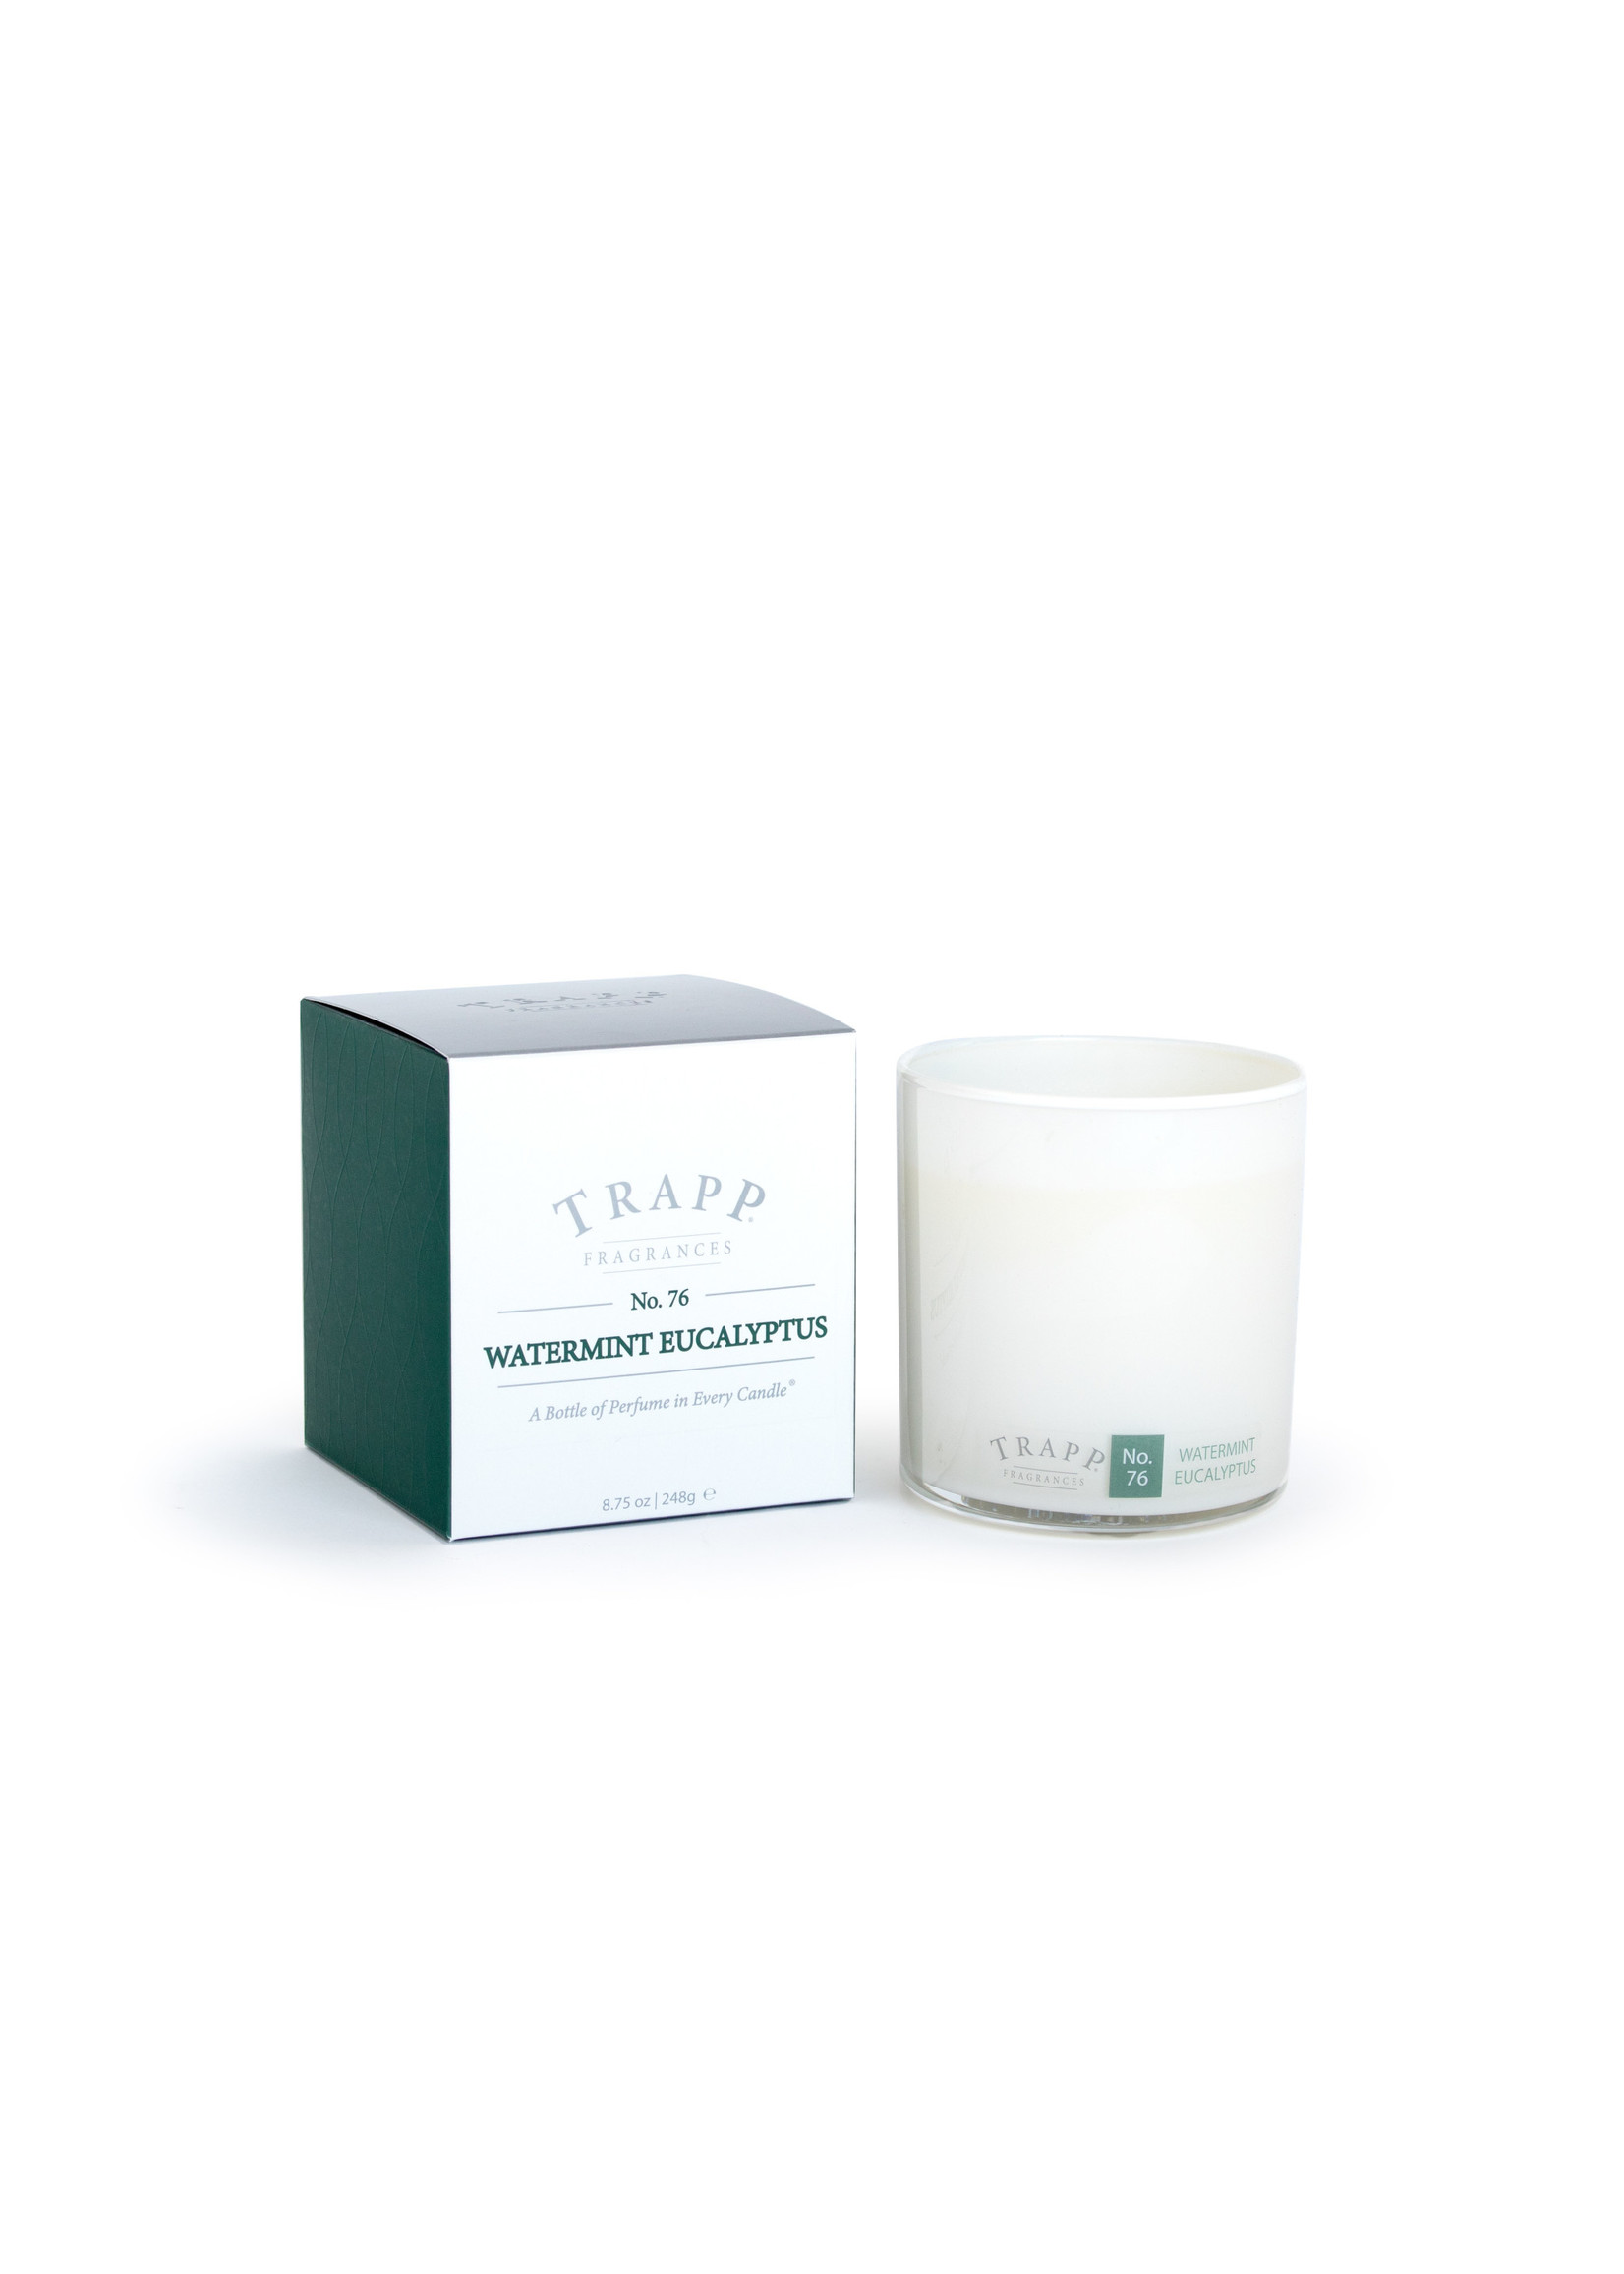 Trapp Candles Ambiance Collection - No. 76 Watermint Eucalyptus - 8.75 oz. Poured Candle